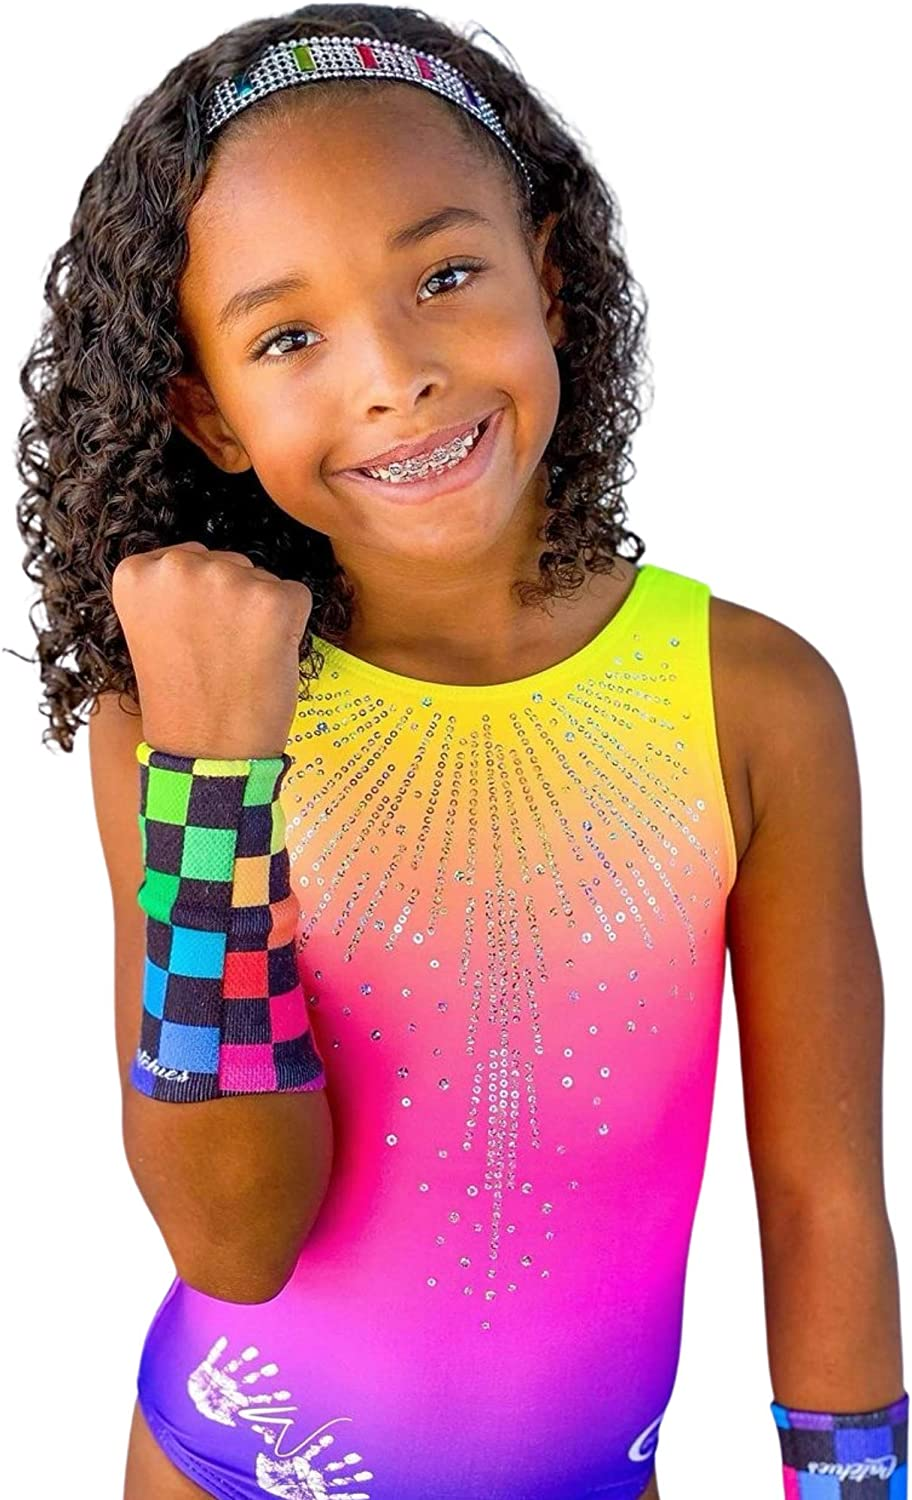 5.25 Inch Length Gymnast Wrist Bands Catchies Gymnastics Wristbands for Girls Variety Styles